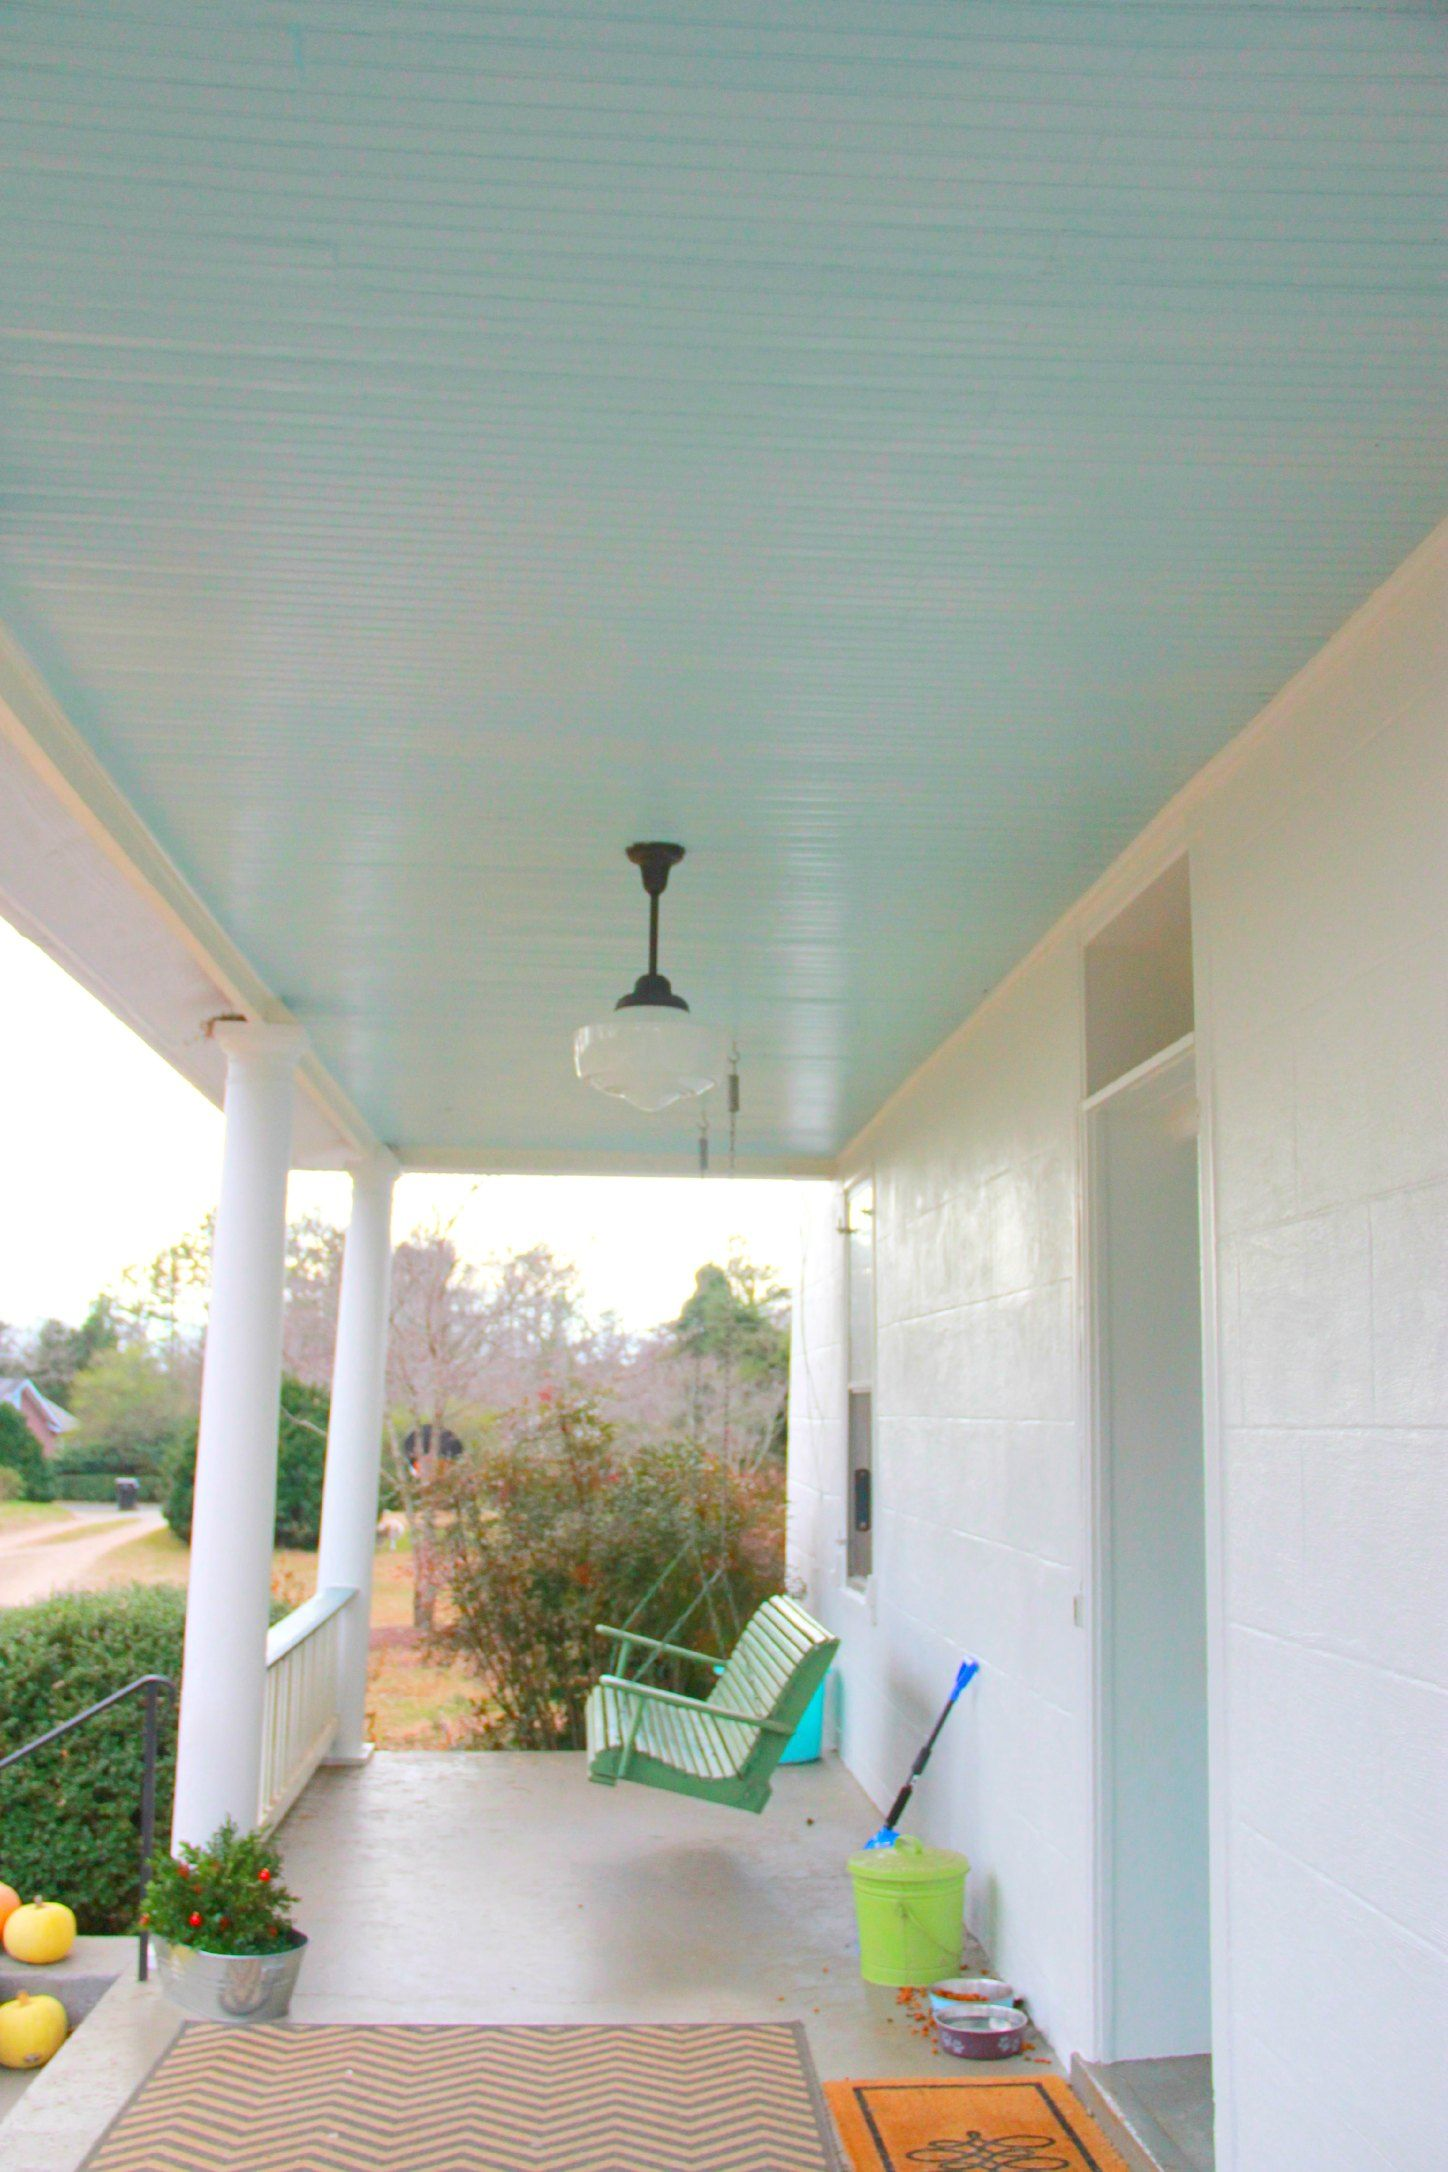 7 Easy Budget Friendly Small Porch Decorating Tips House With Porch Front Porch Decorating Porch Makeover